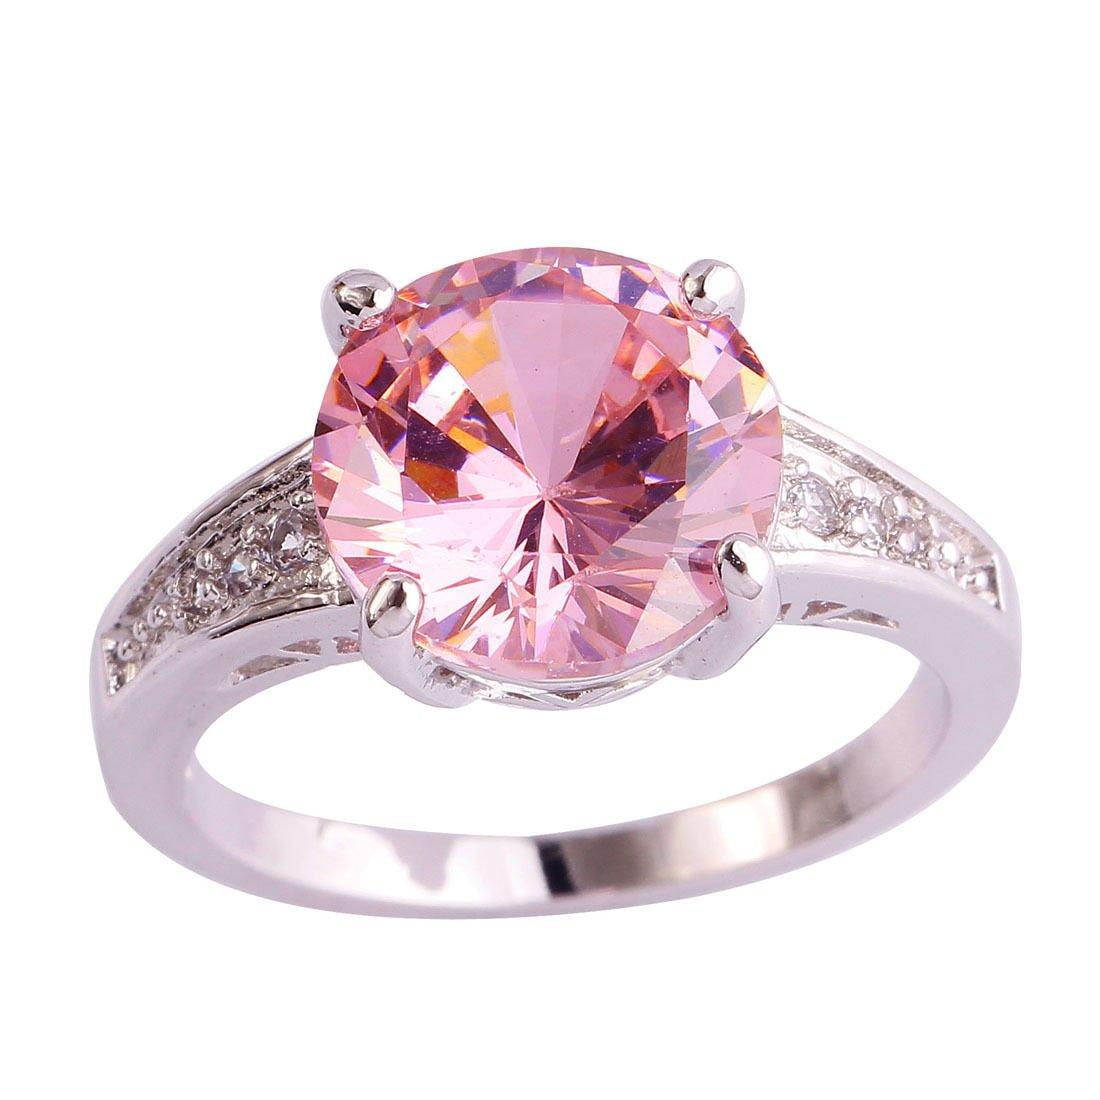 Amazon.com: Siam panva Wedding Pink White Topaz Gemstone Jewelry ...